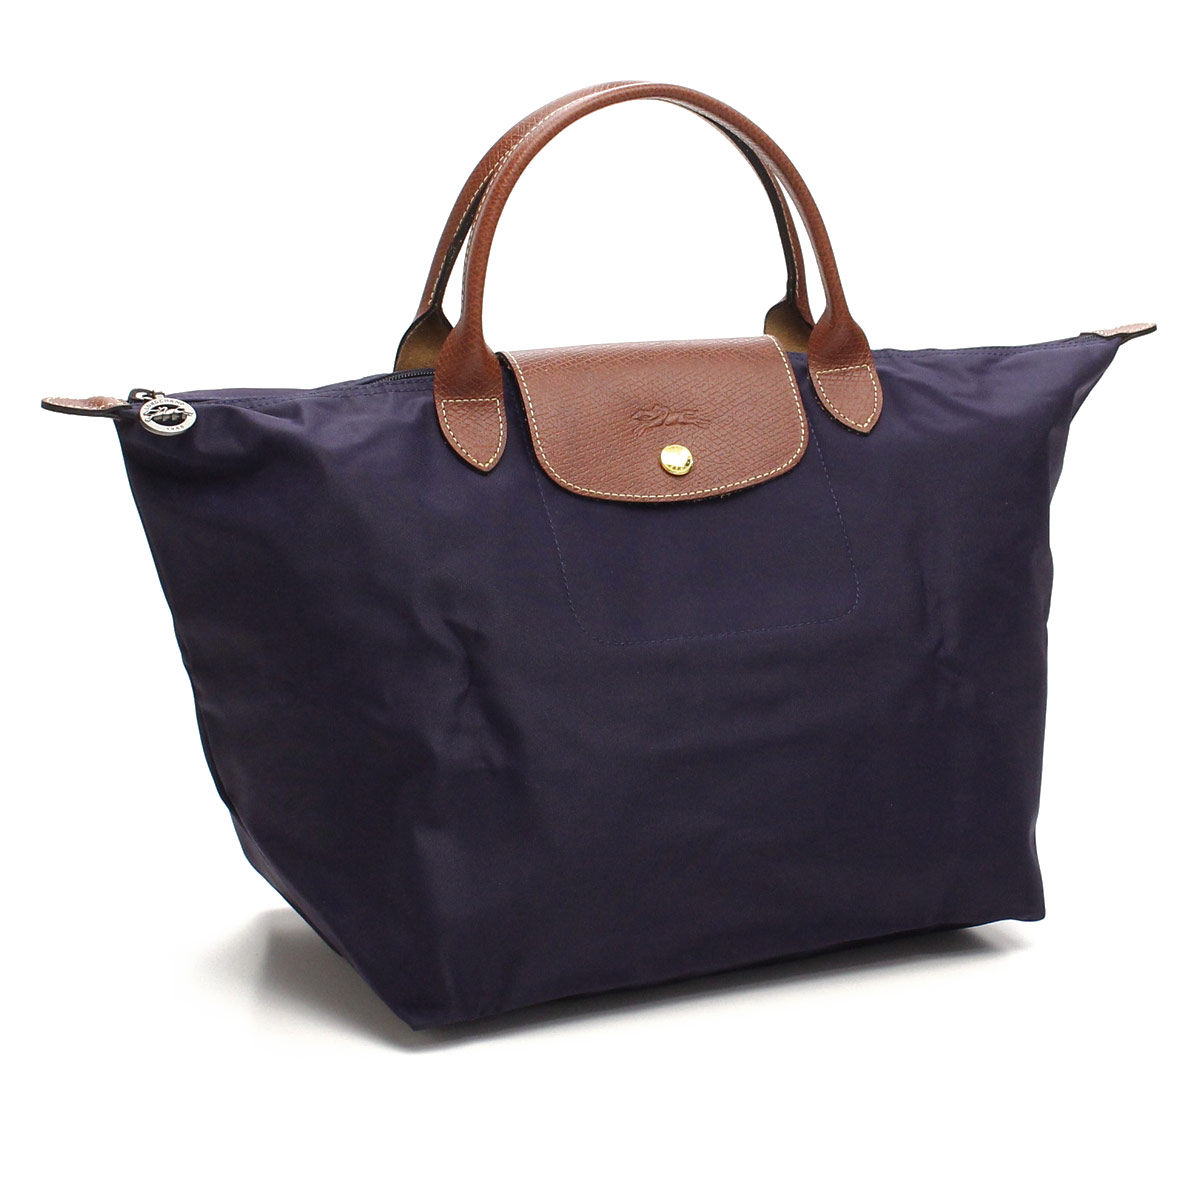 2776a7b2cb29 Bighit The total brand wholesale  (LONGCHAMP) Longchamp PLIAGE tote bag  1623 089 645 Purple system( taxfree send by EMS authentic A brand new item  ) ...